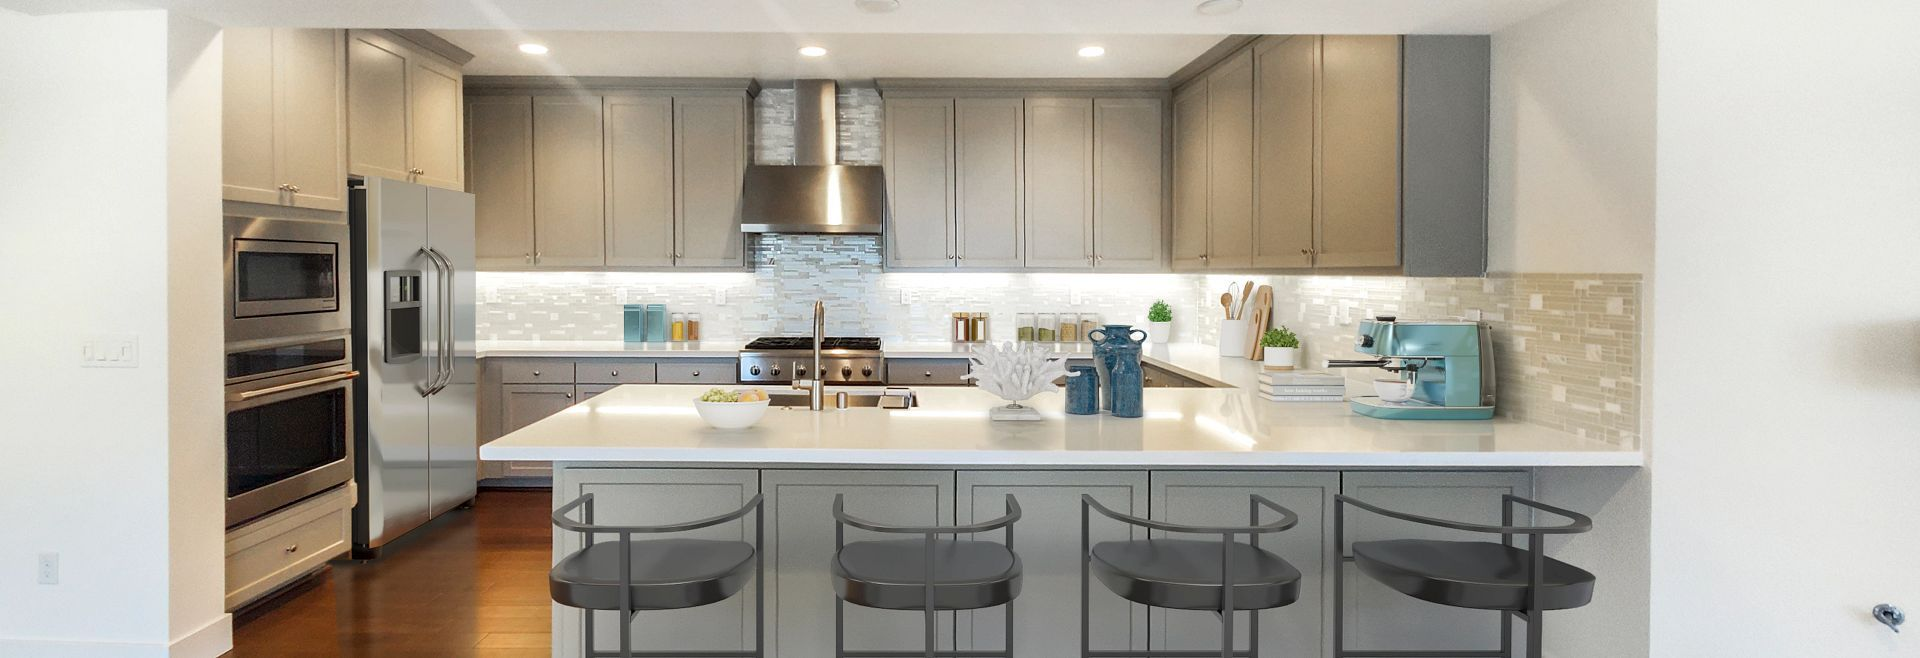 Kitchen featured in the Plan 4A By Shea Homes in Oakland-Alameda, CA